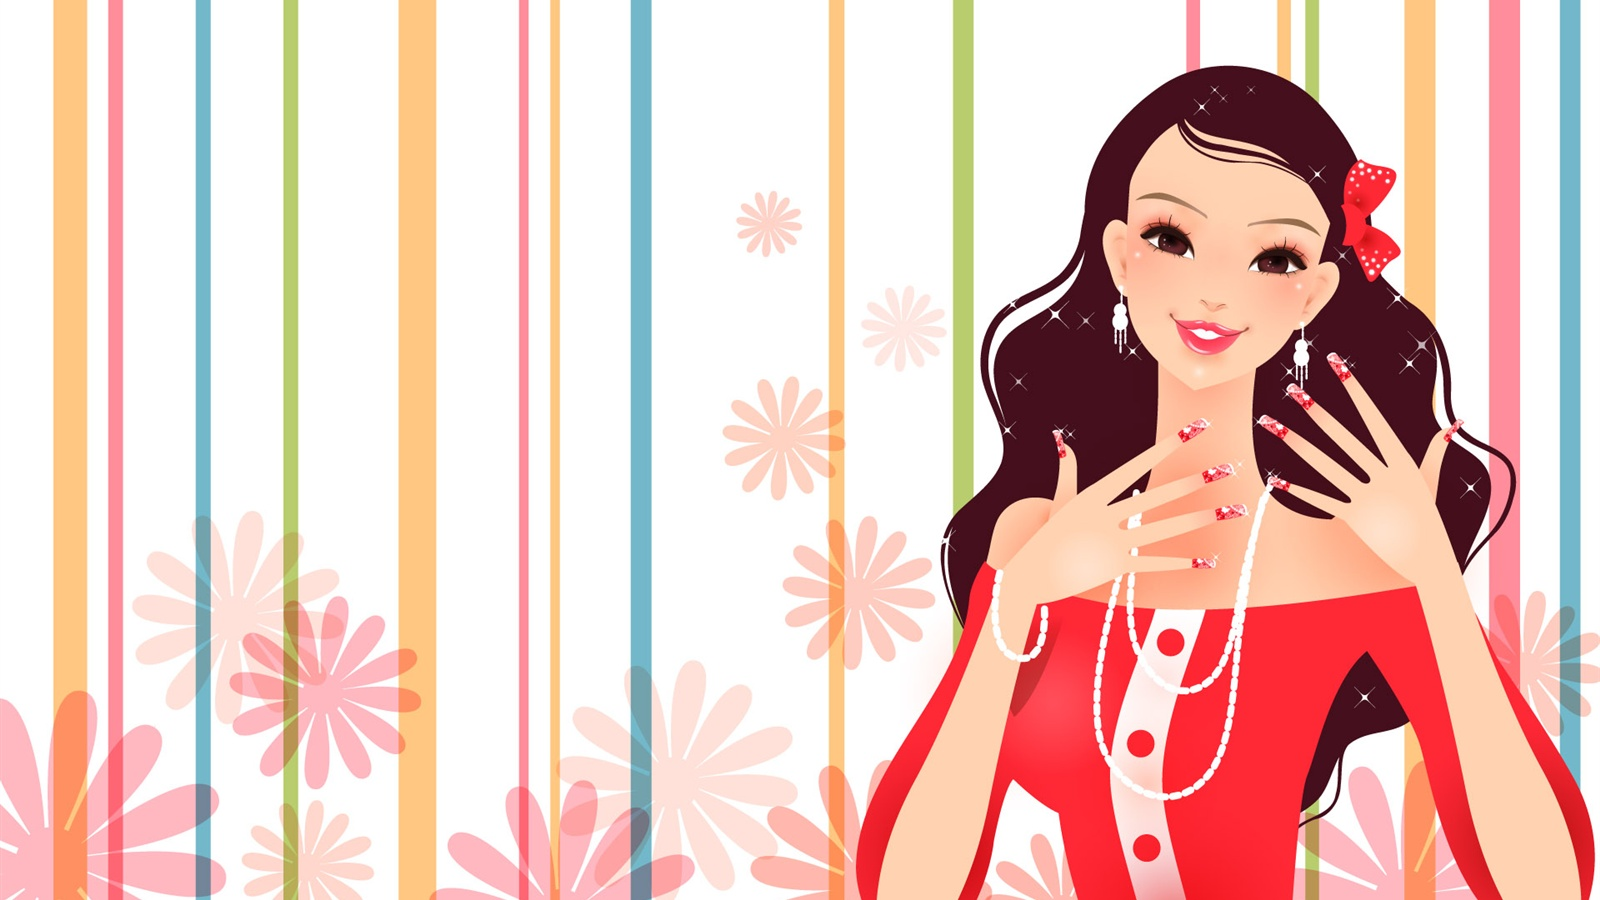 Gorgeous dress fashion girl vector wallpaper - 1600x900